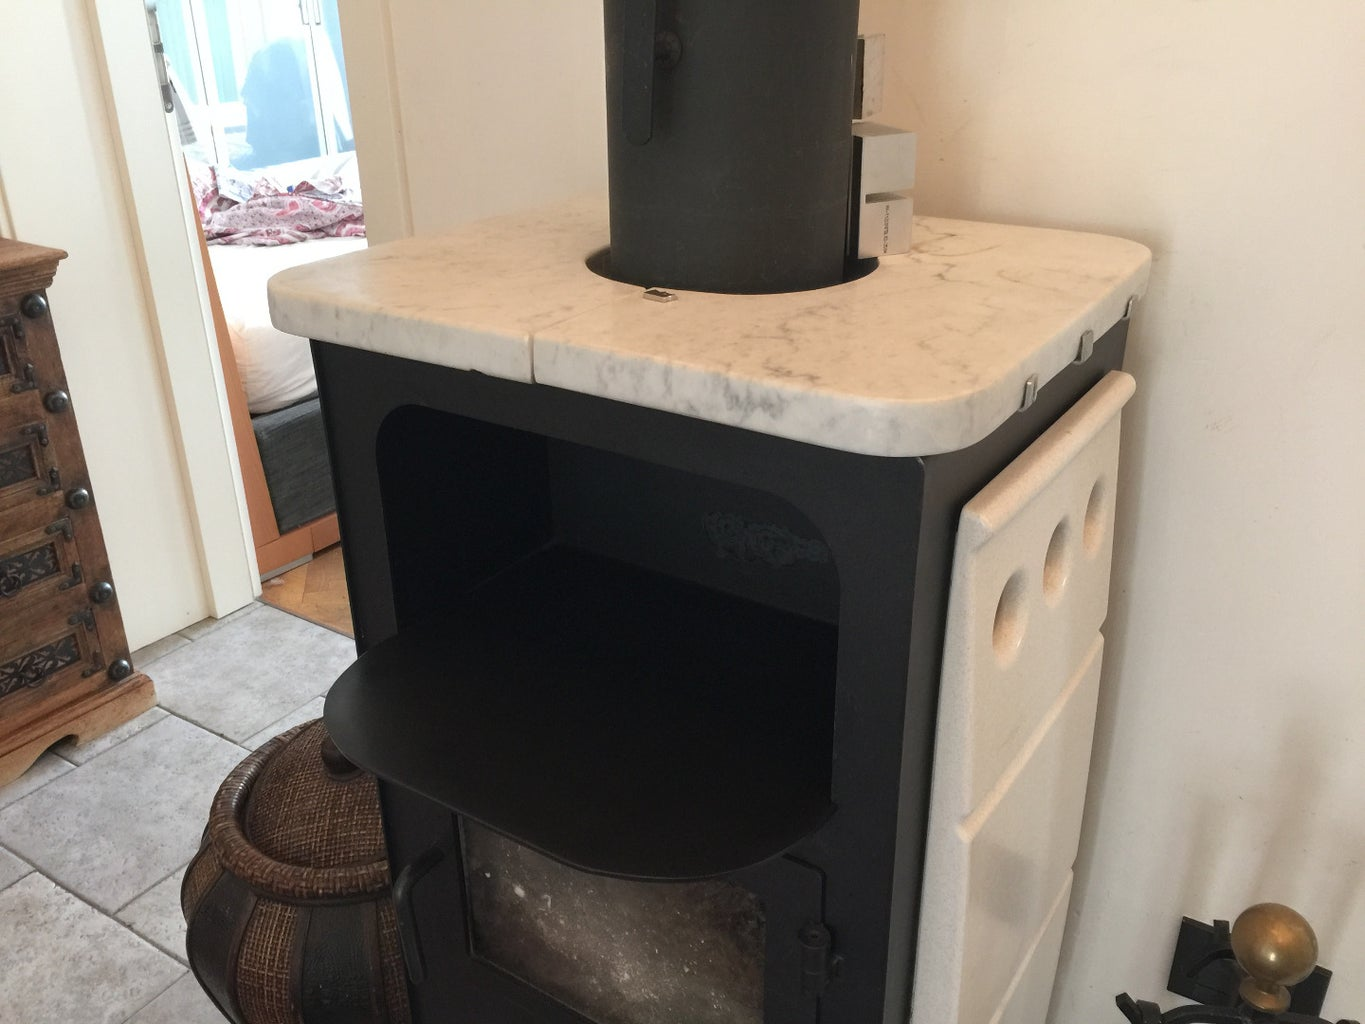 Need More Place for Cooking